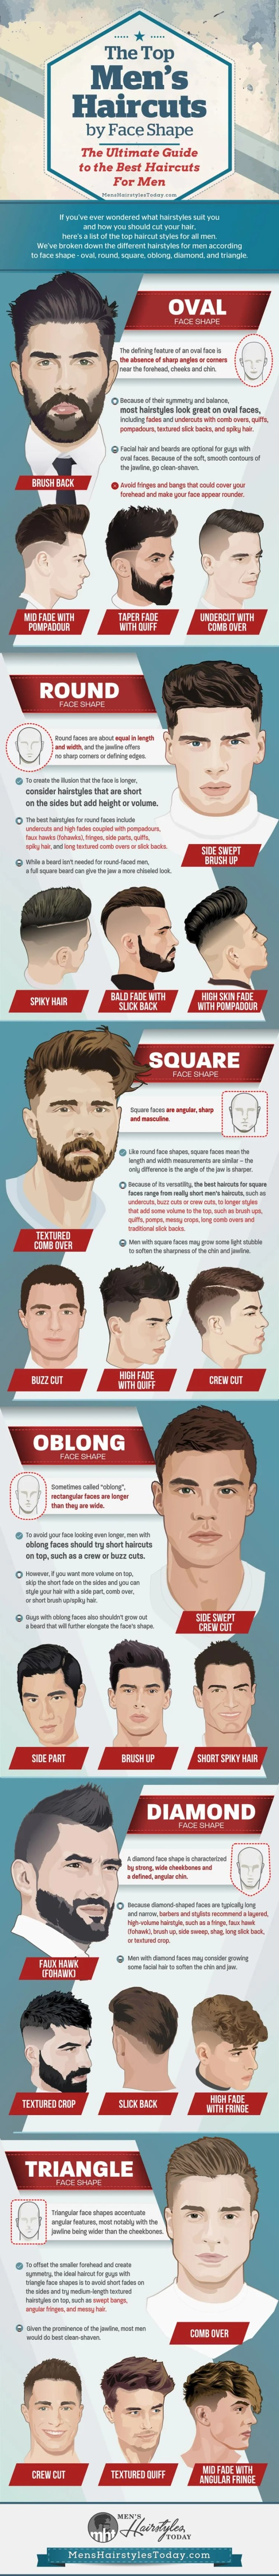 what haircut should i get? (2019 guide)